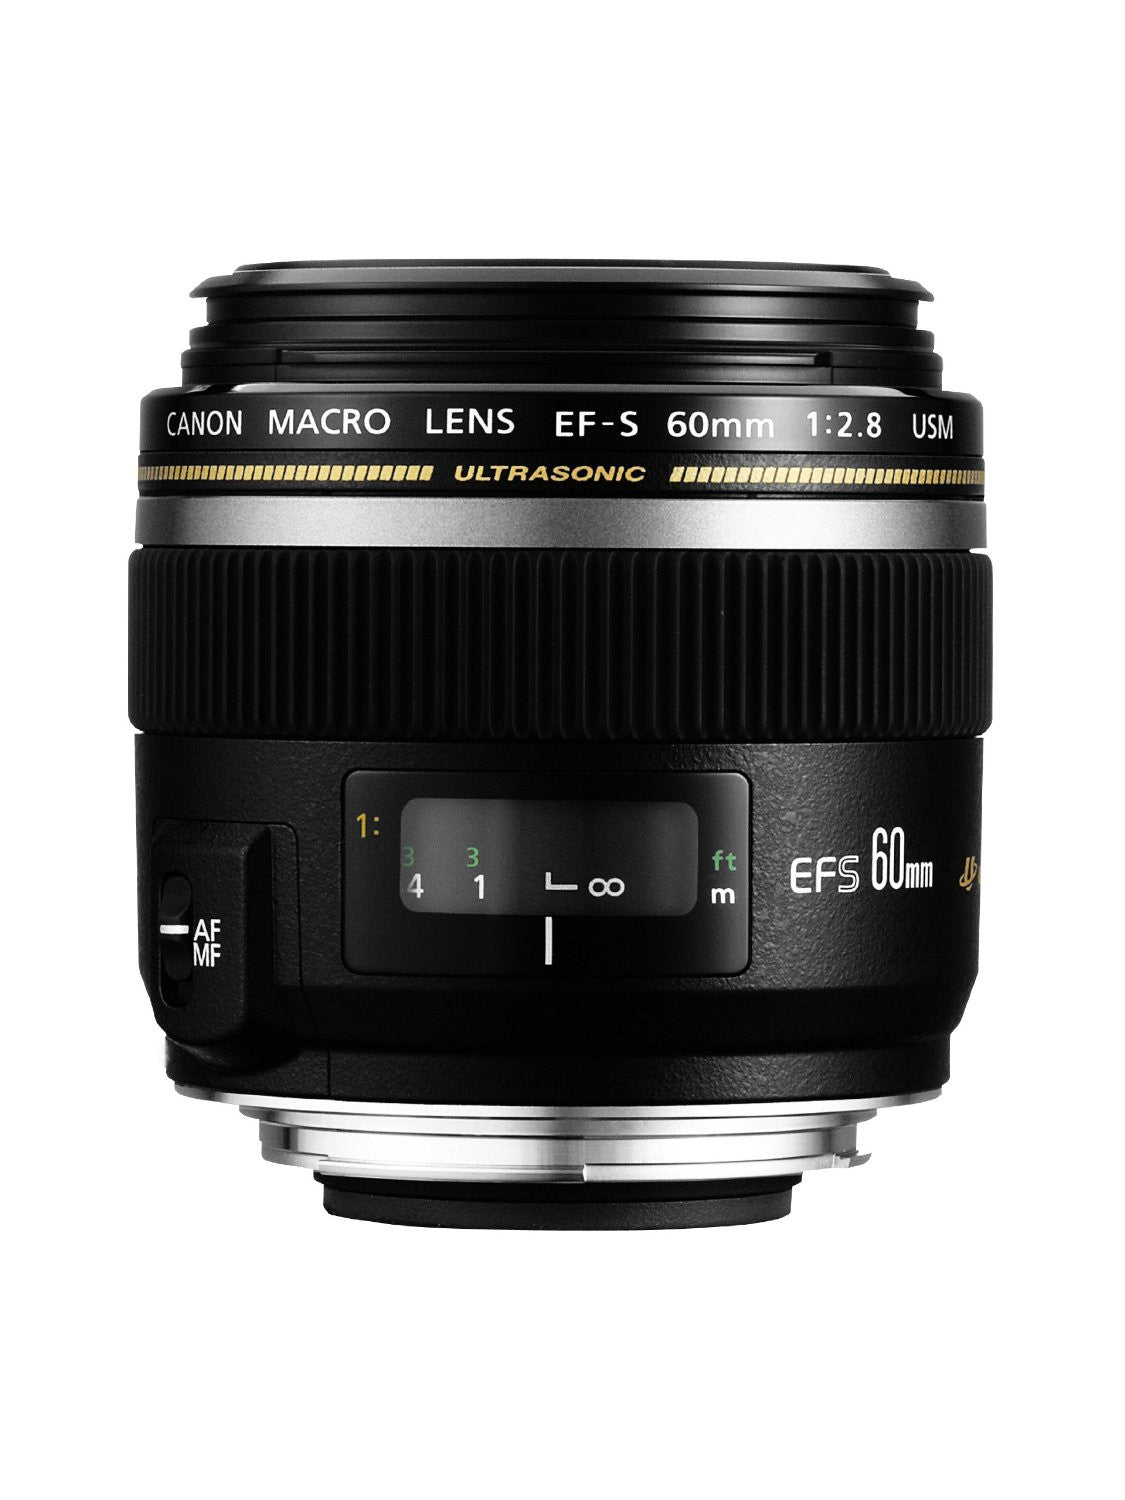 CANON EF-S60mm f/2.8 Macro USM Lens - Refurbished - IRISLAB